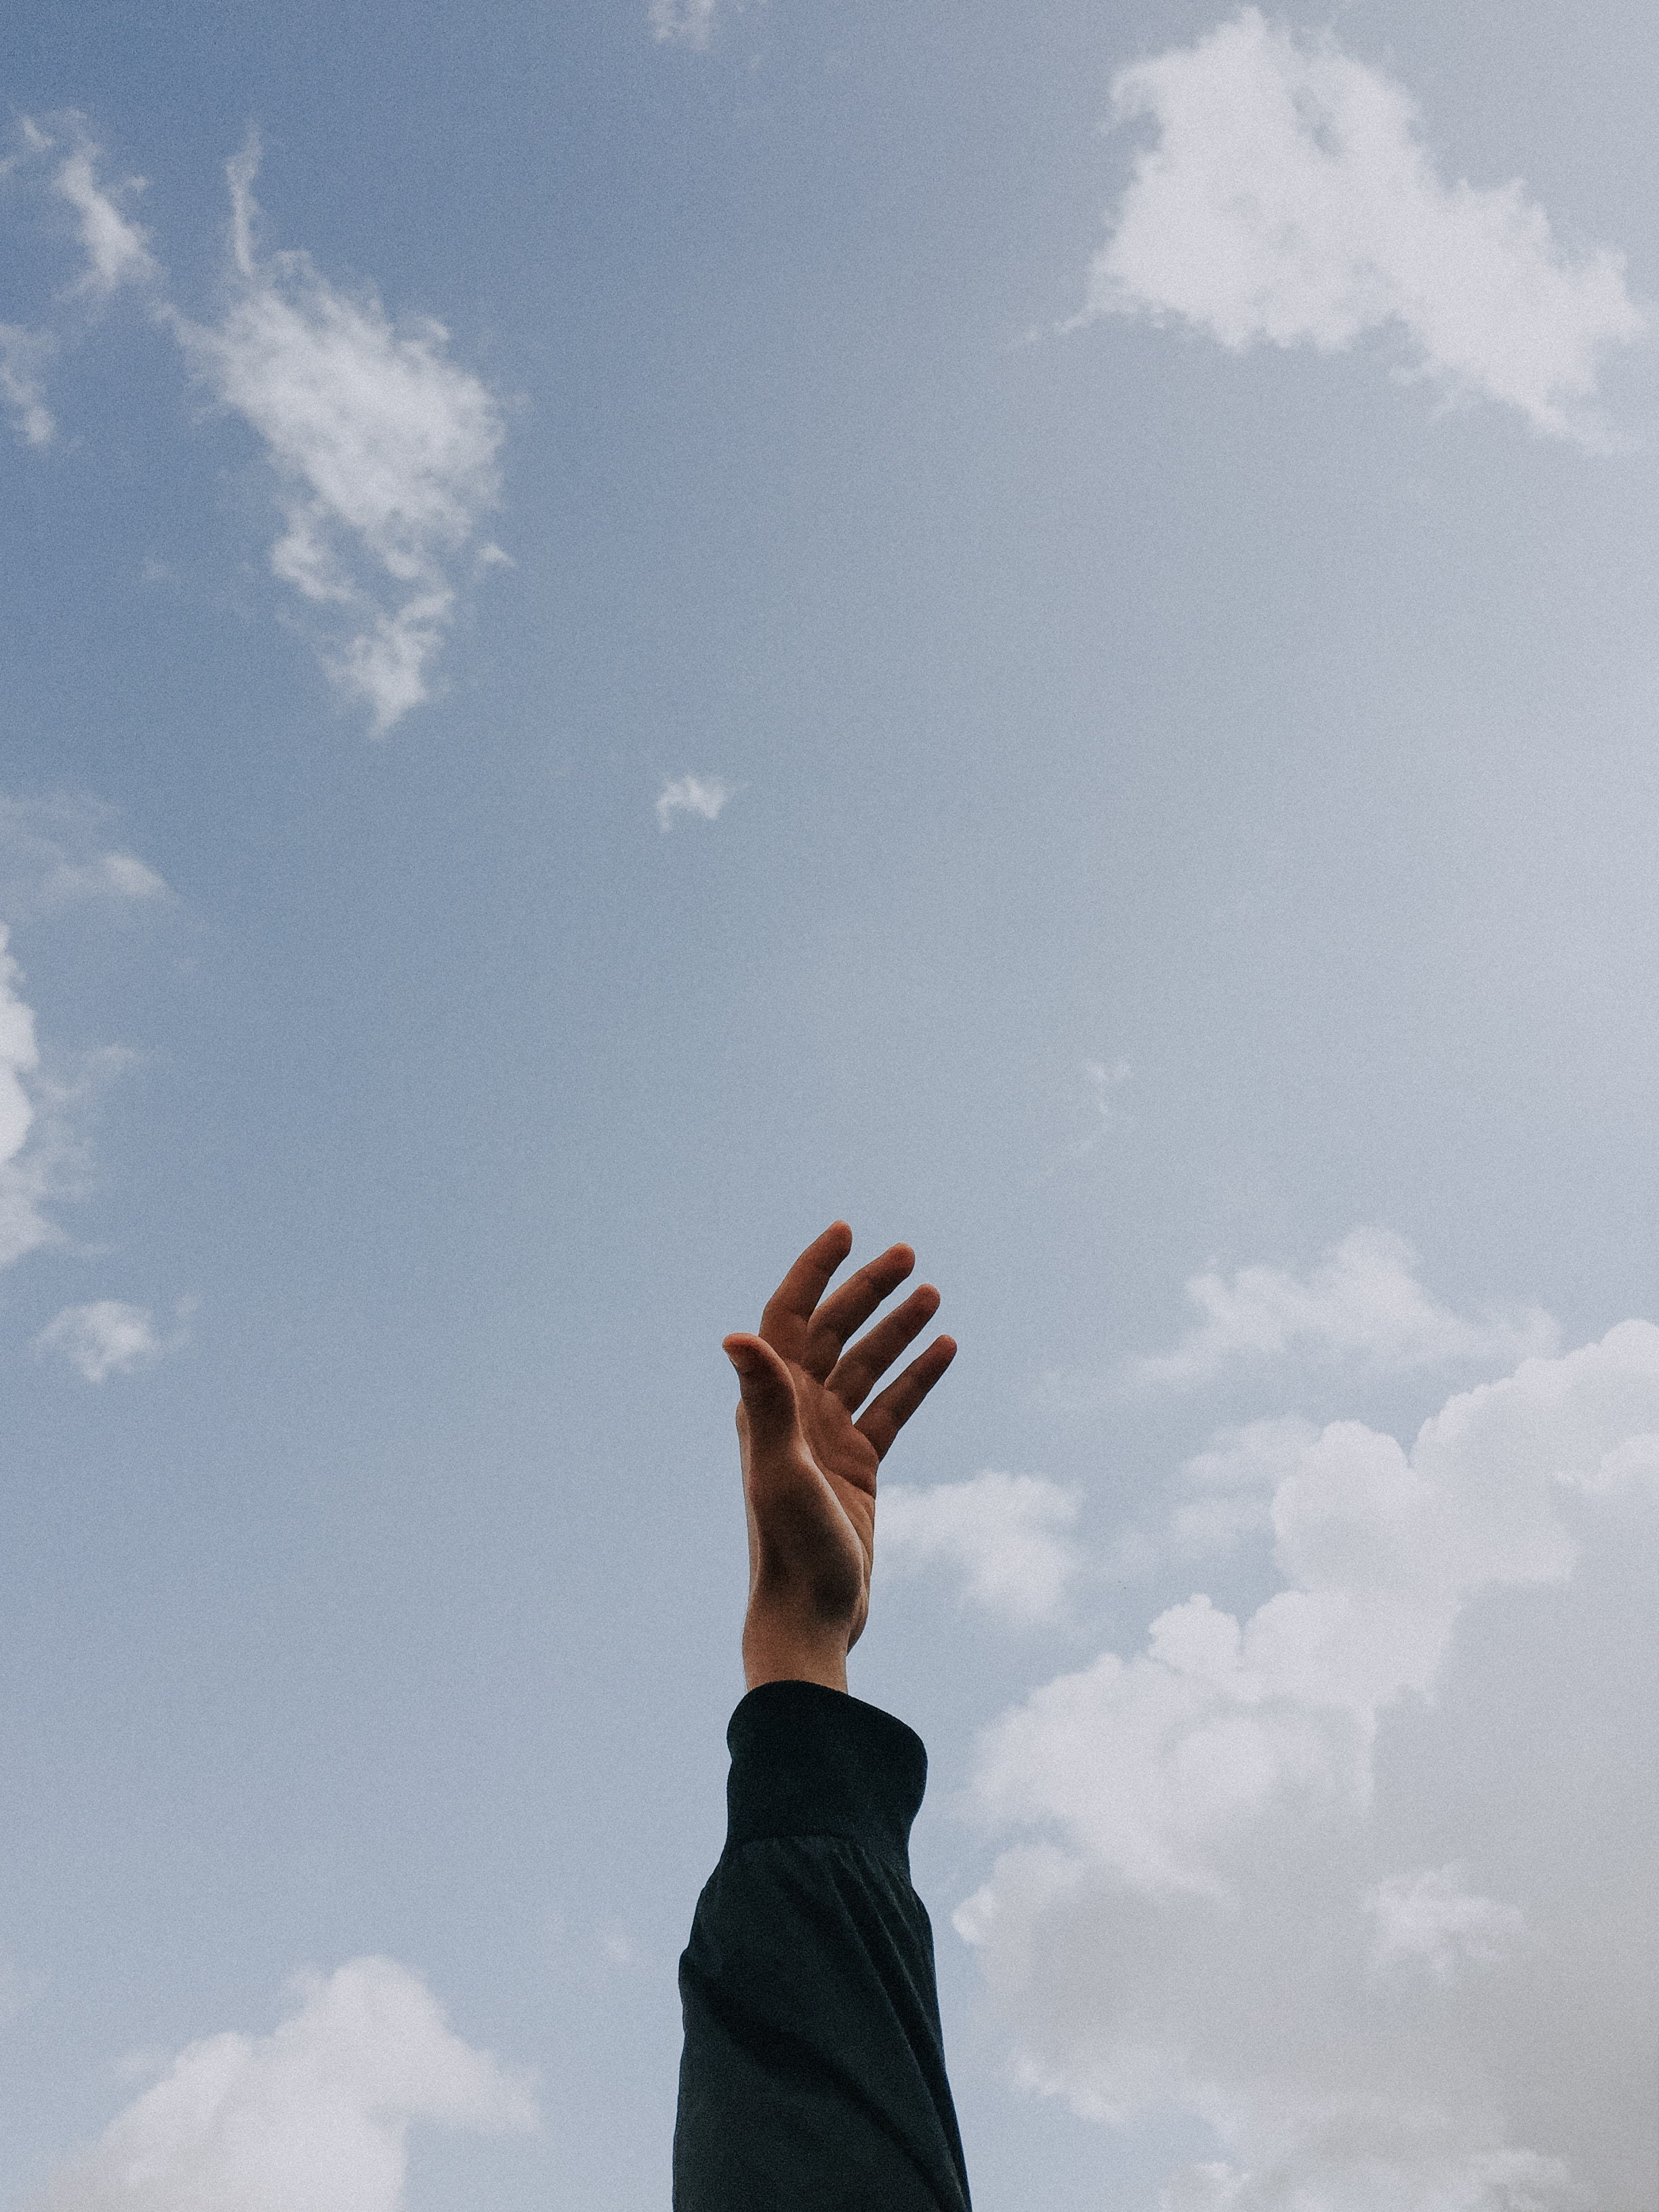 141950 download wallpaper Sky, Clouds, Hand, Minimalism, Fingers, Freedom, Lift Up, Raise screensavers and pictures for free